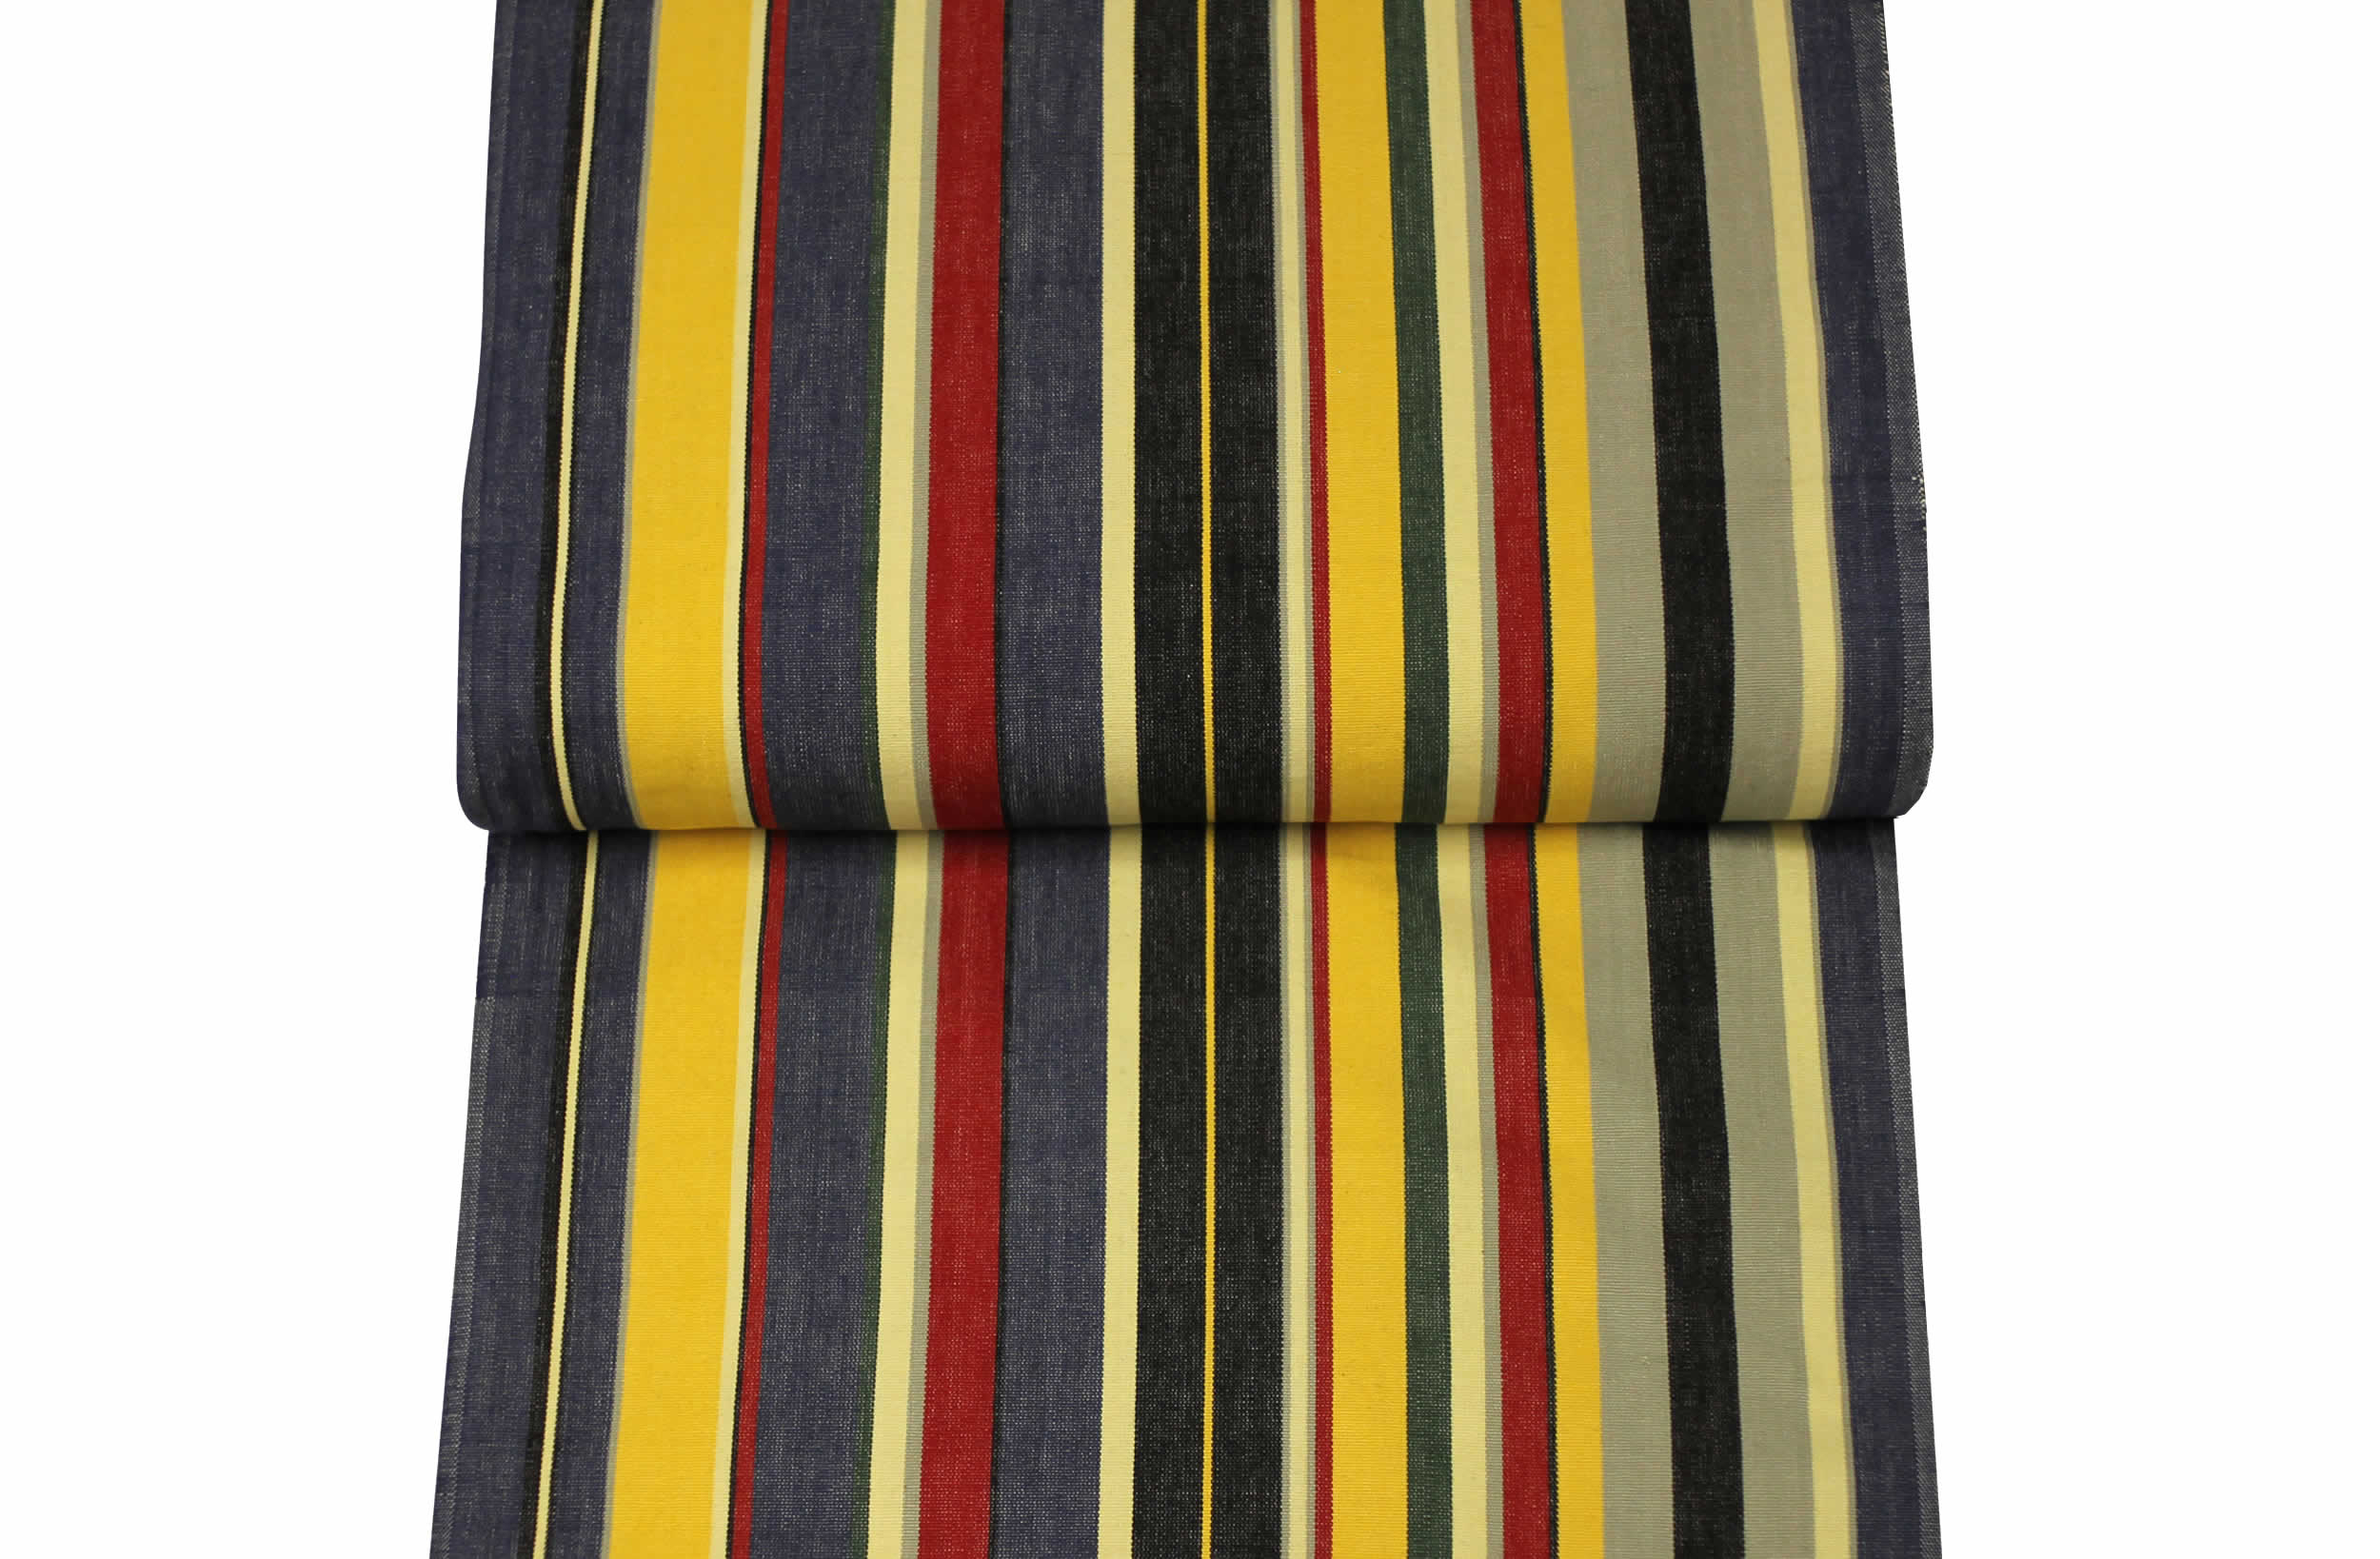 Blue Deckchair Canvas Fabrics Latin Stripe The Stripes